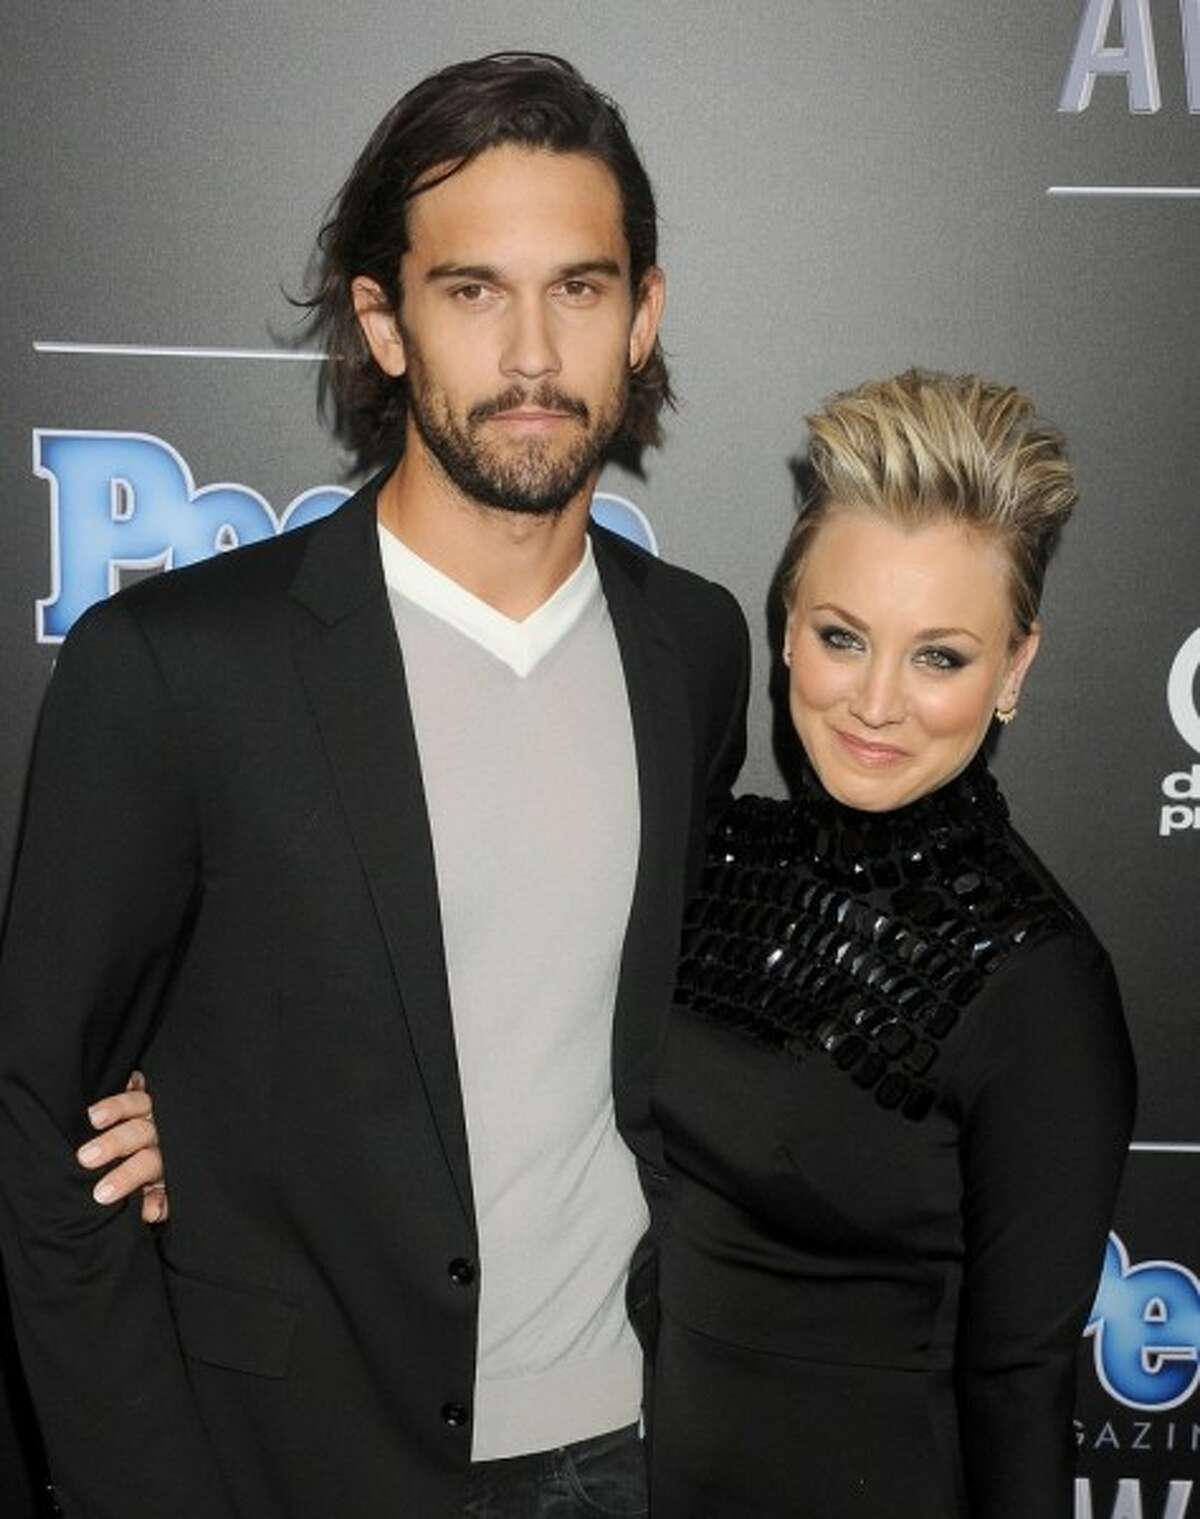 Kaley Cuoco changed her name to Kaley Cuoco-Sweeting while she was married to Ryan Sweeting.